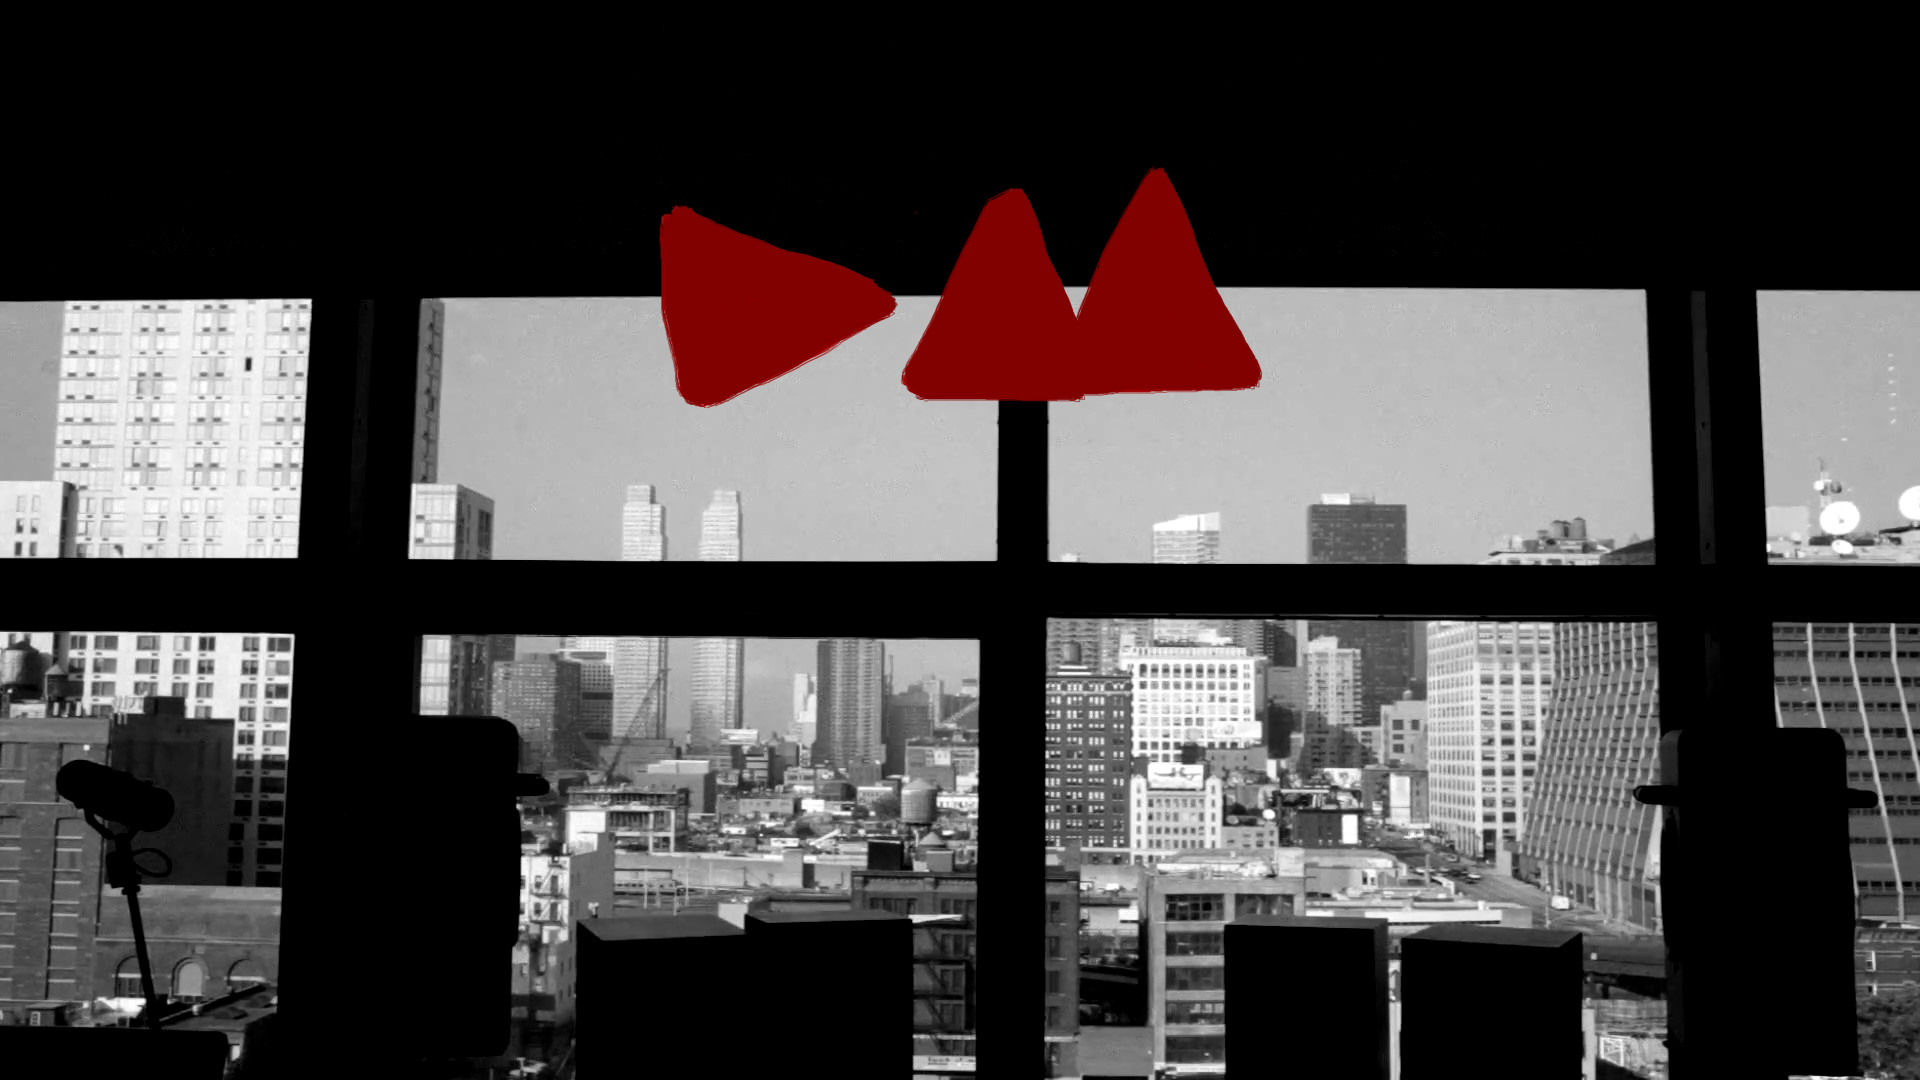 1920x1080 ... Depeche Mode : In-Studio Collage 2012 -3- by IDAlizes